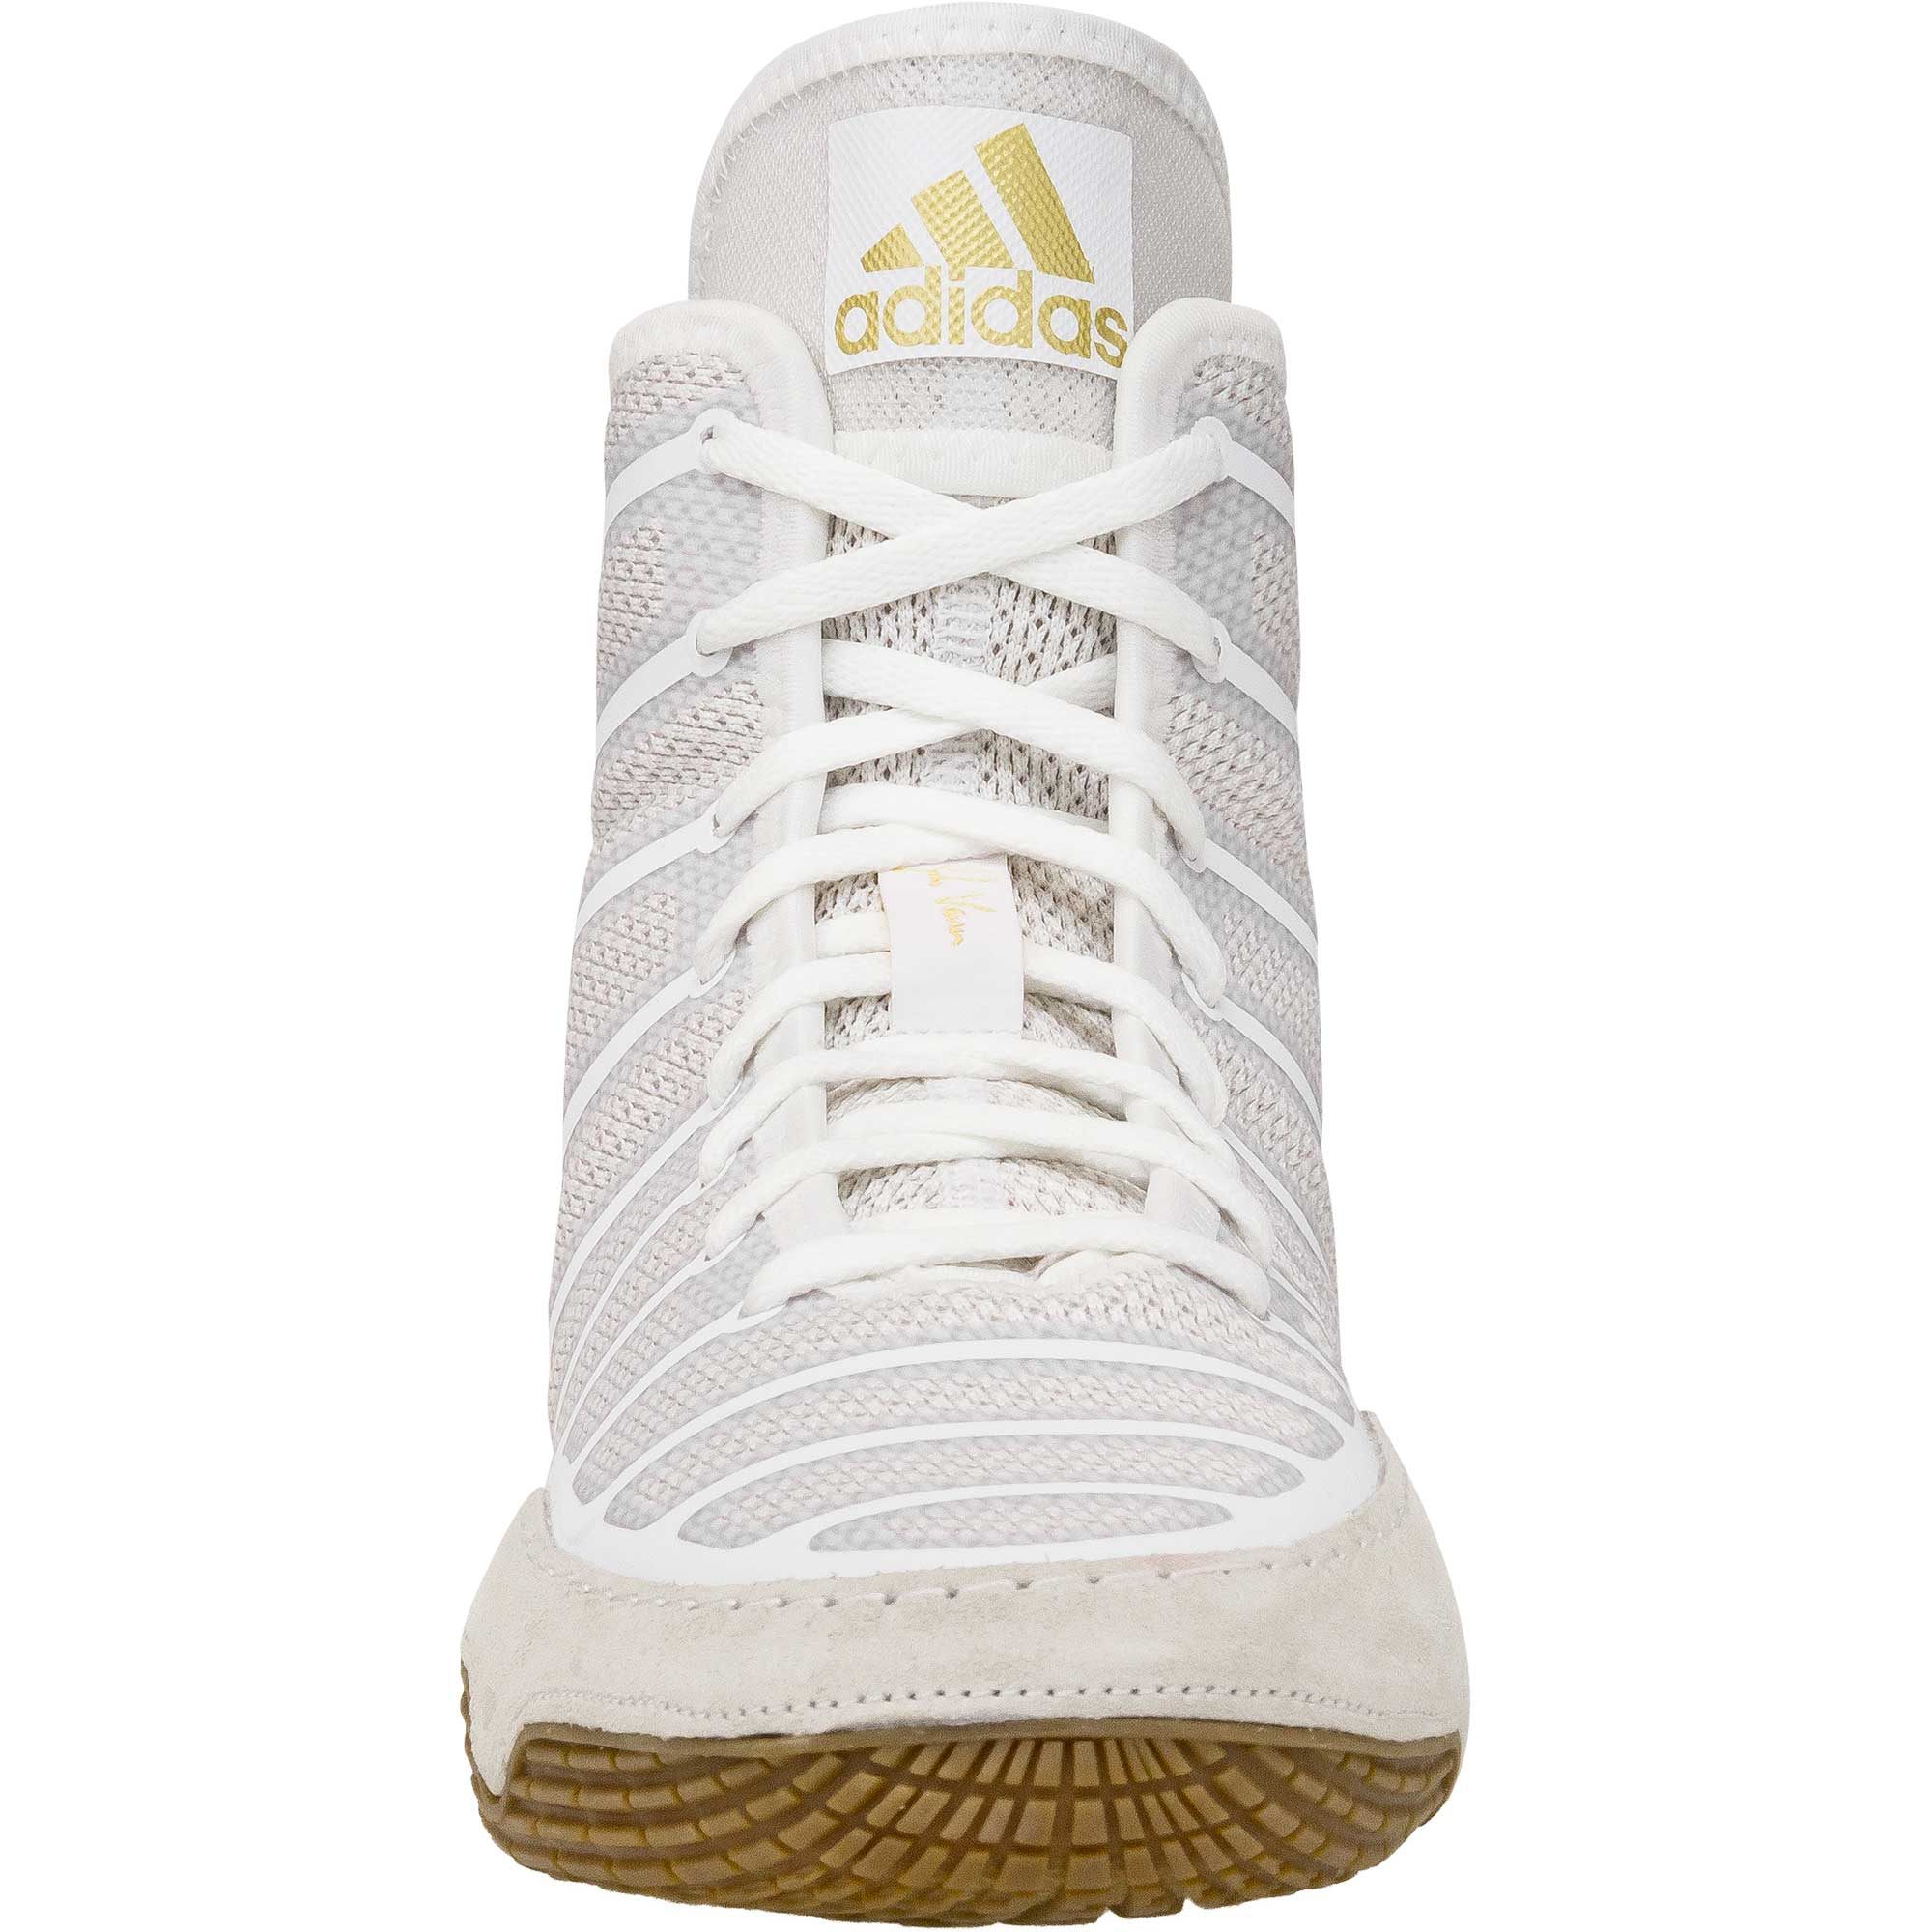 adidas gold and white